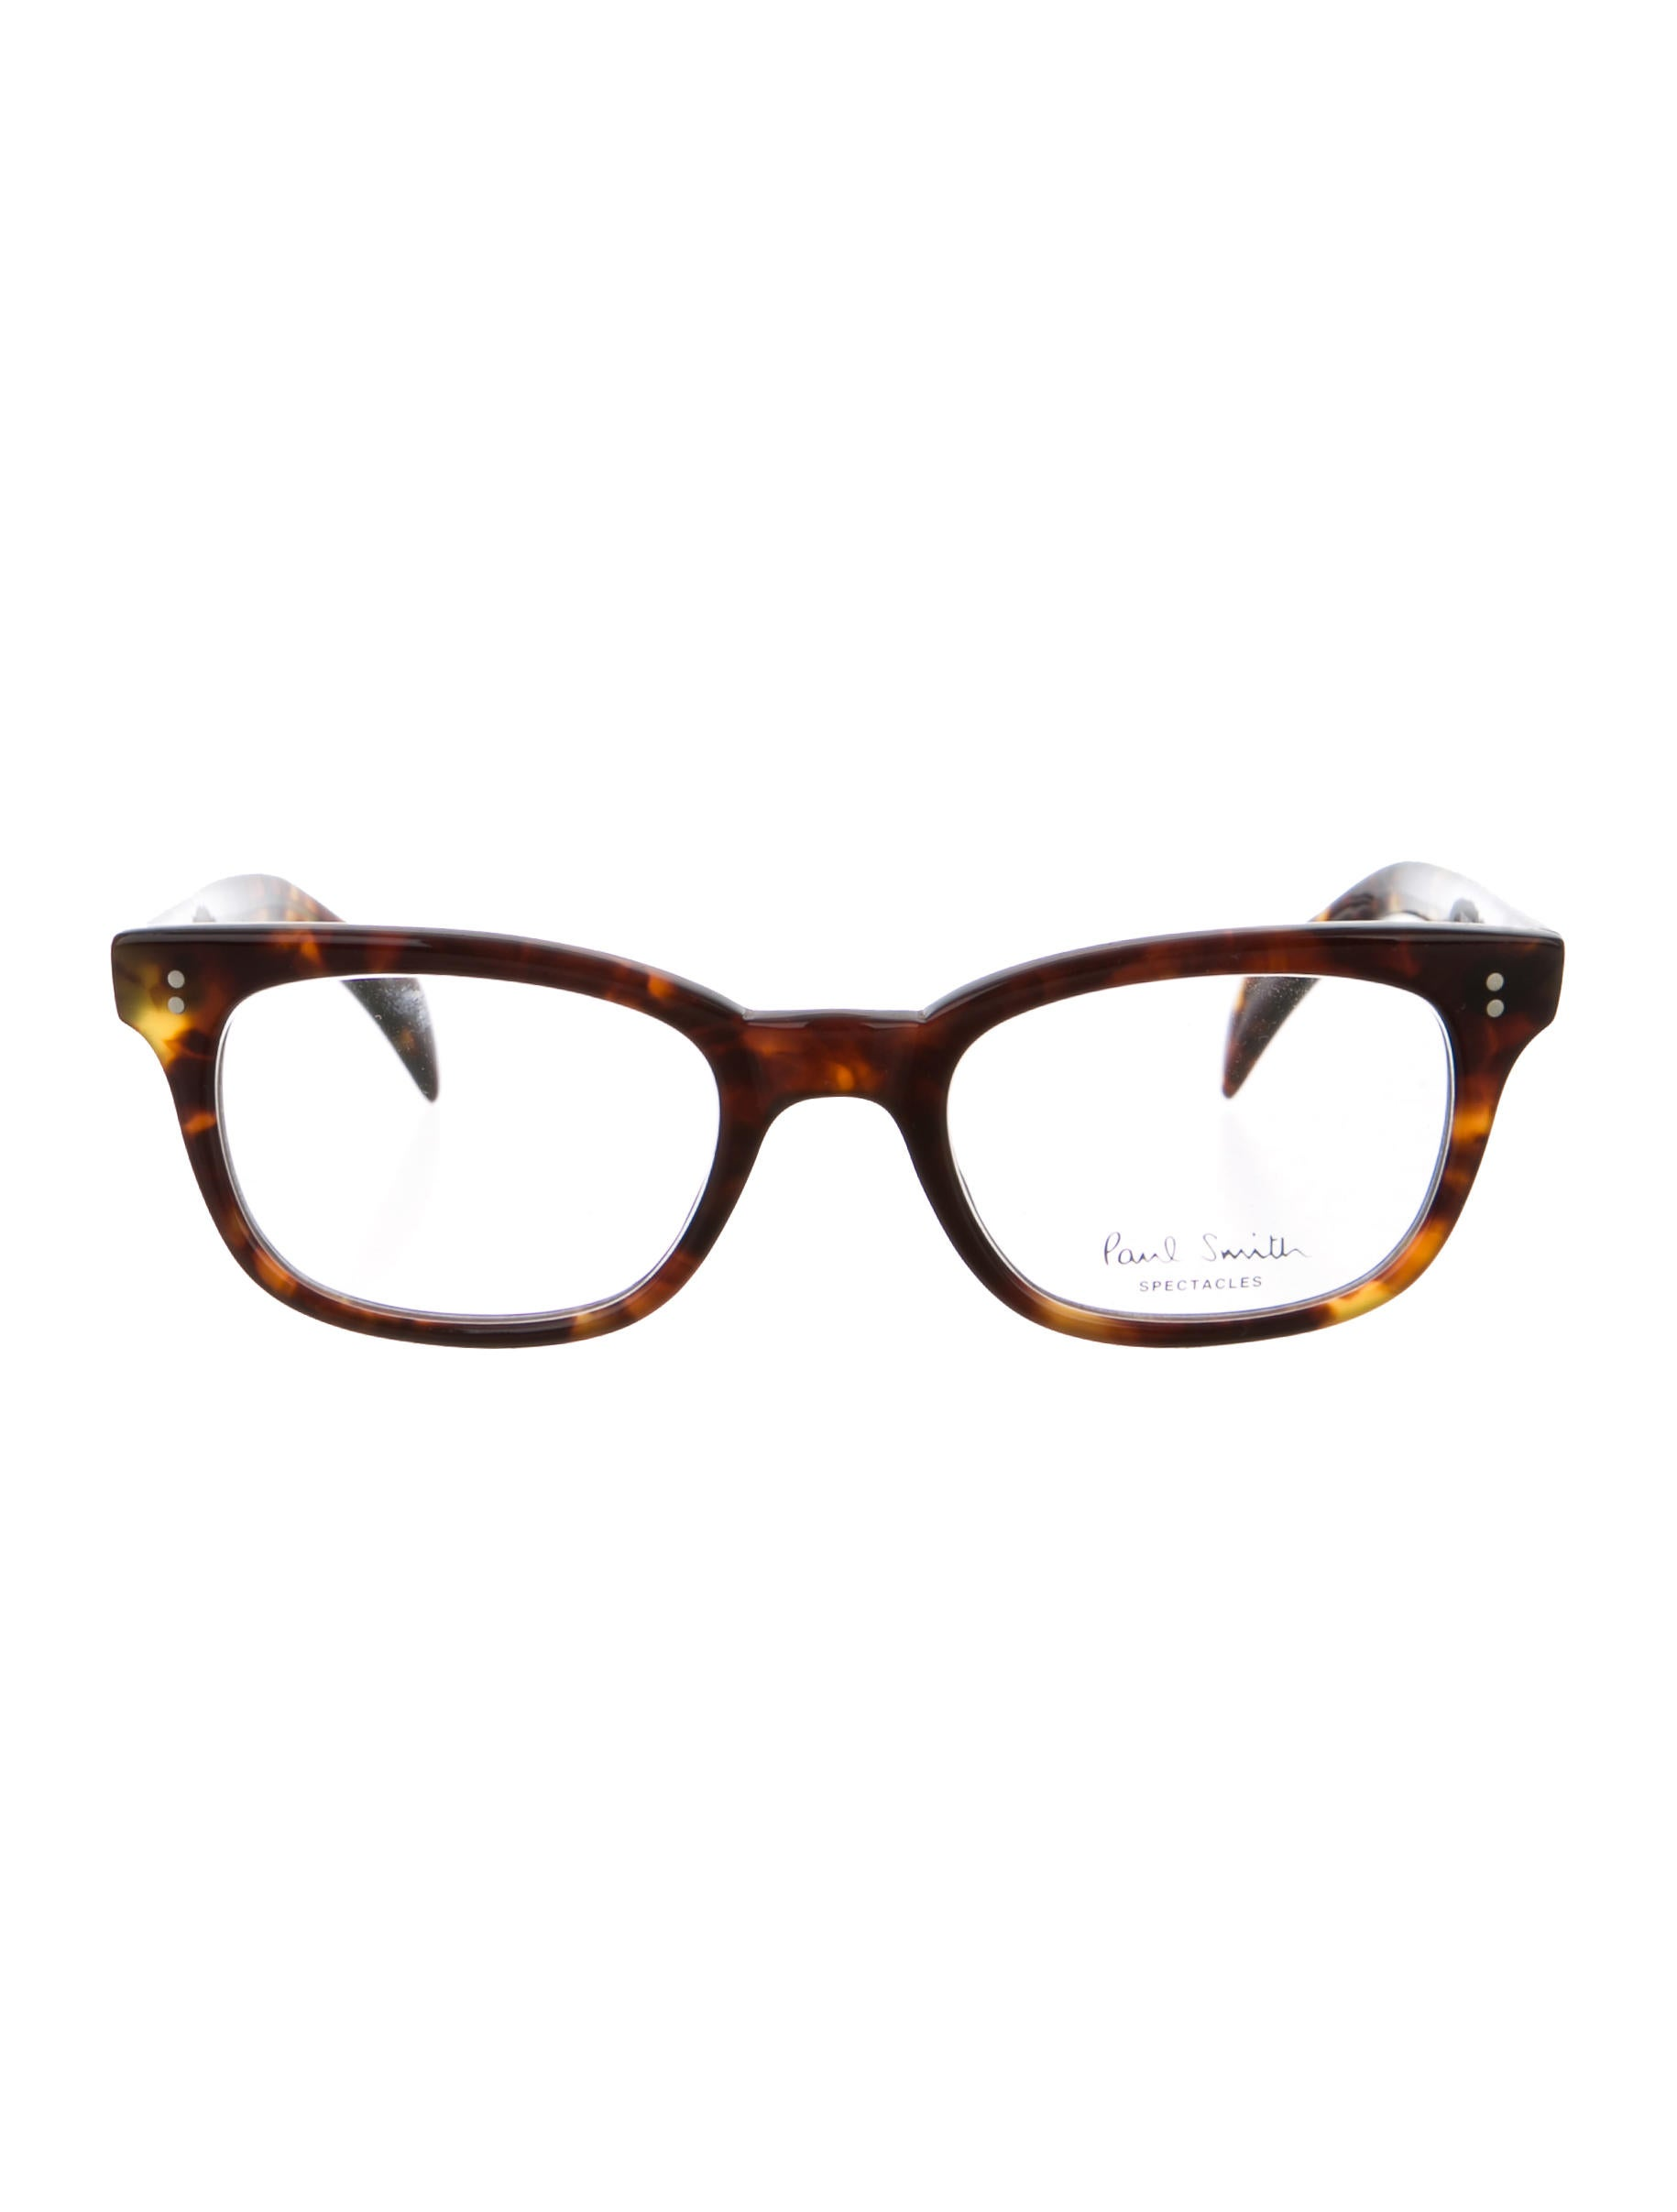 Glasses Frames Too Narrow : Paul Smith Narrow Tortoiseshell Eyeglasses - Accessories ...